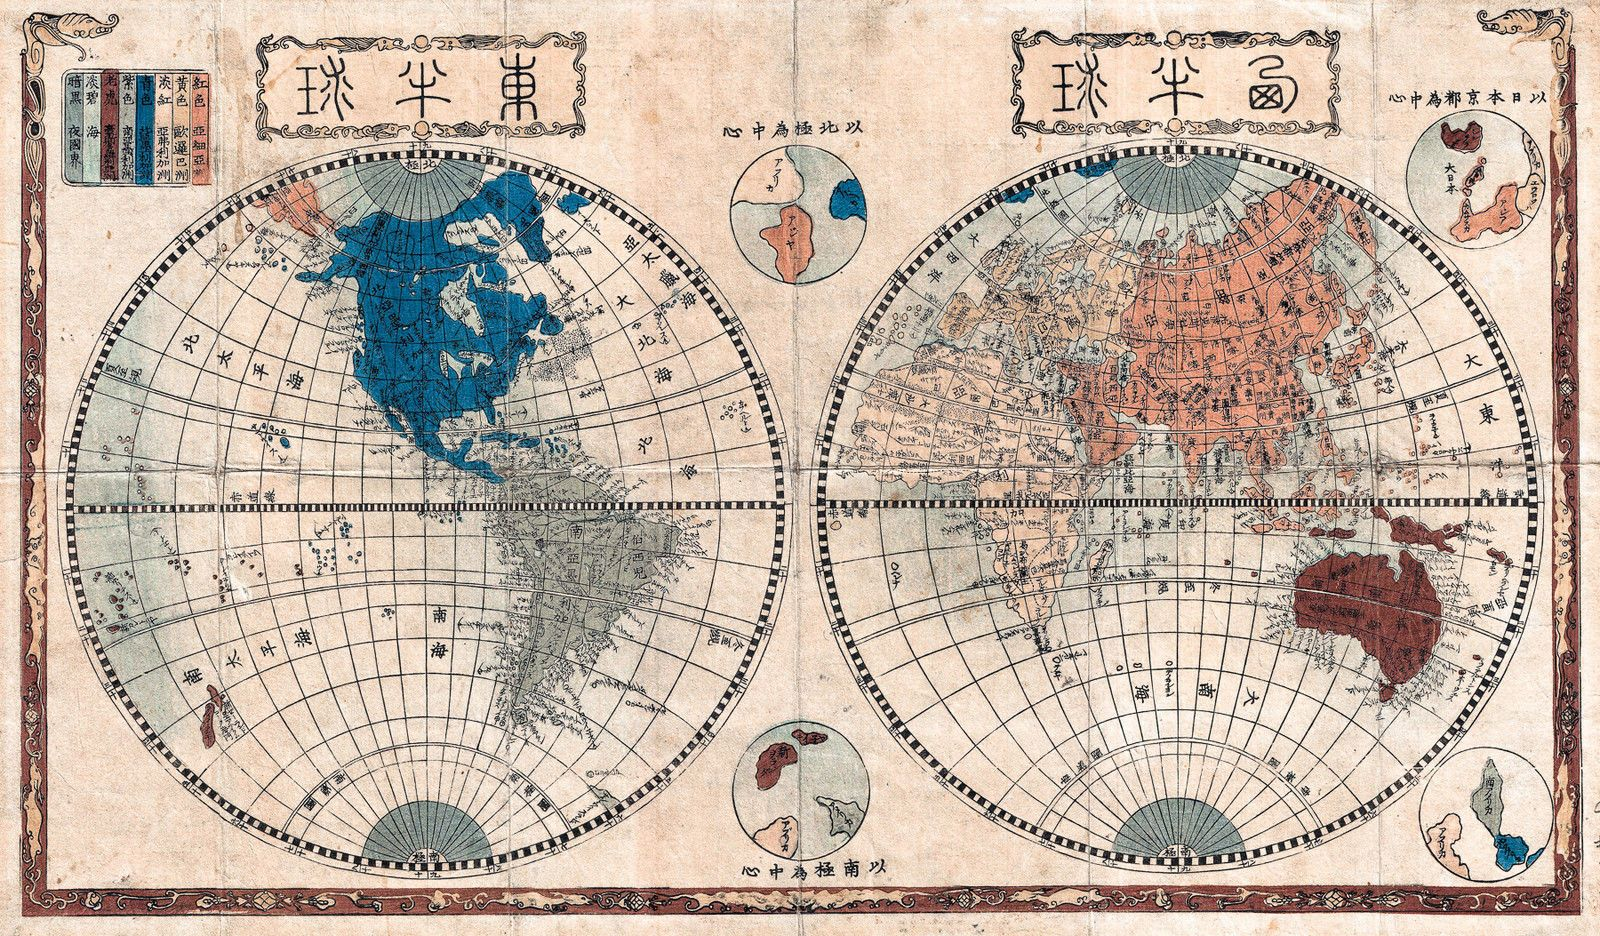 Antique Japanese World Map, Vintage, 1848, Fade Resistant HD Print or Canvas in Art, Prints | eBay